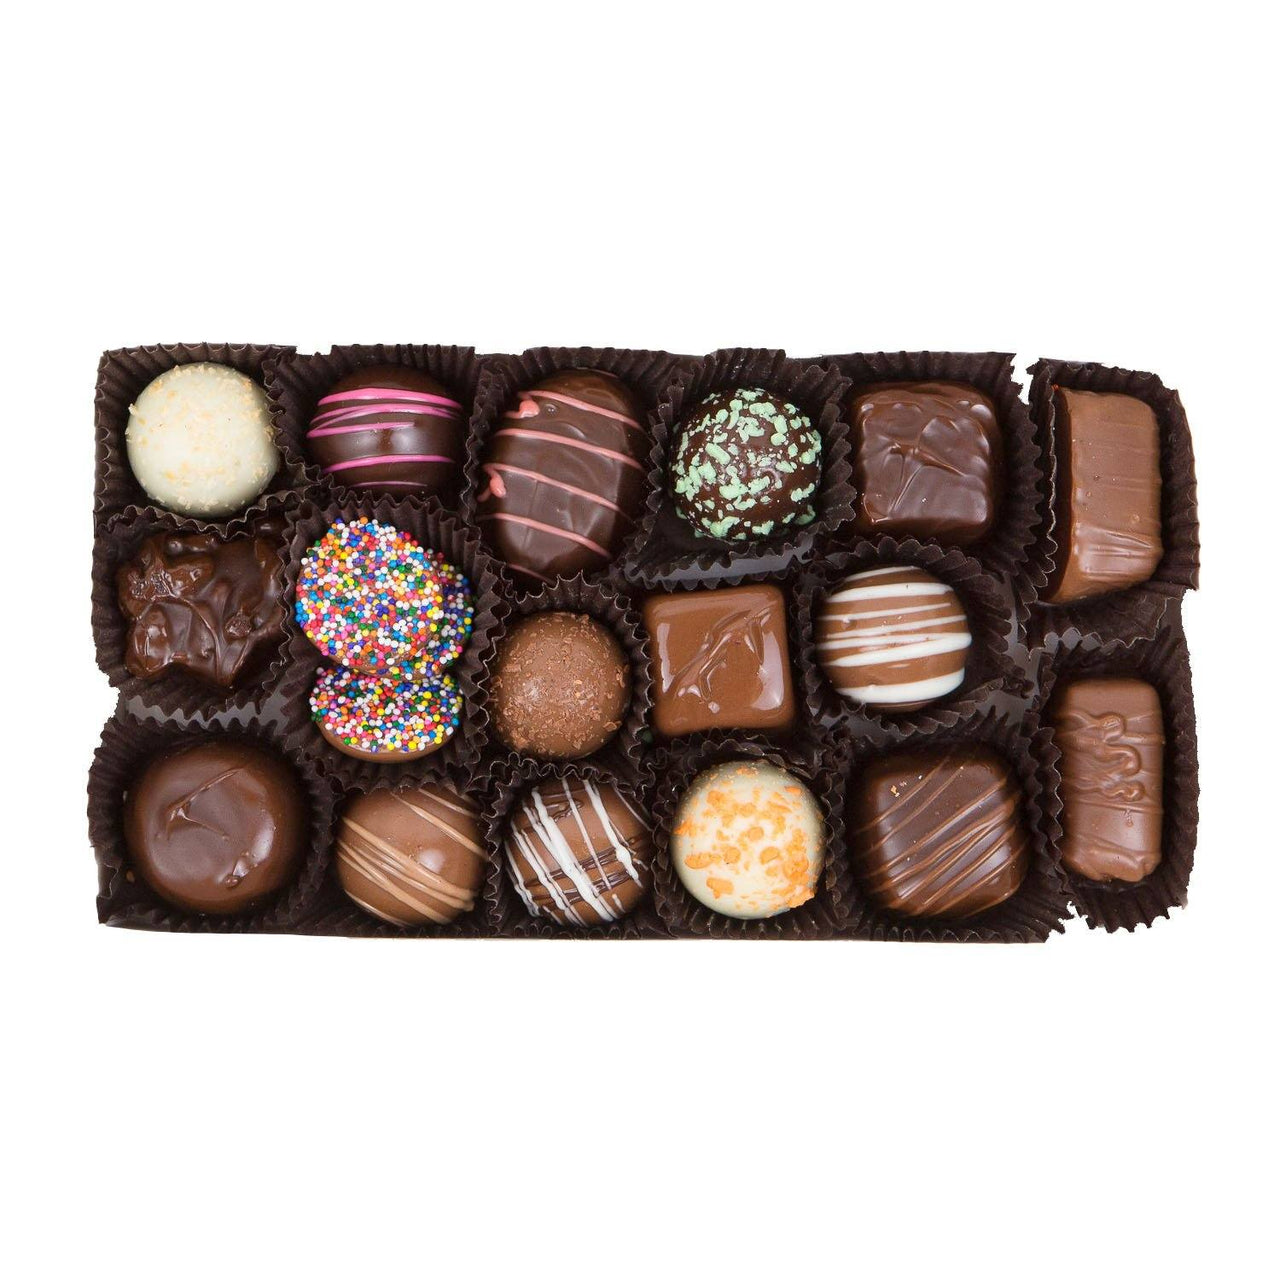 Gifts for Bride-to-Be - Assorted Chocolate Gift Box - Jackie's Chocolate (1487133114403)